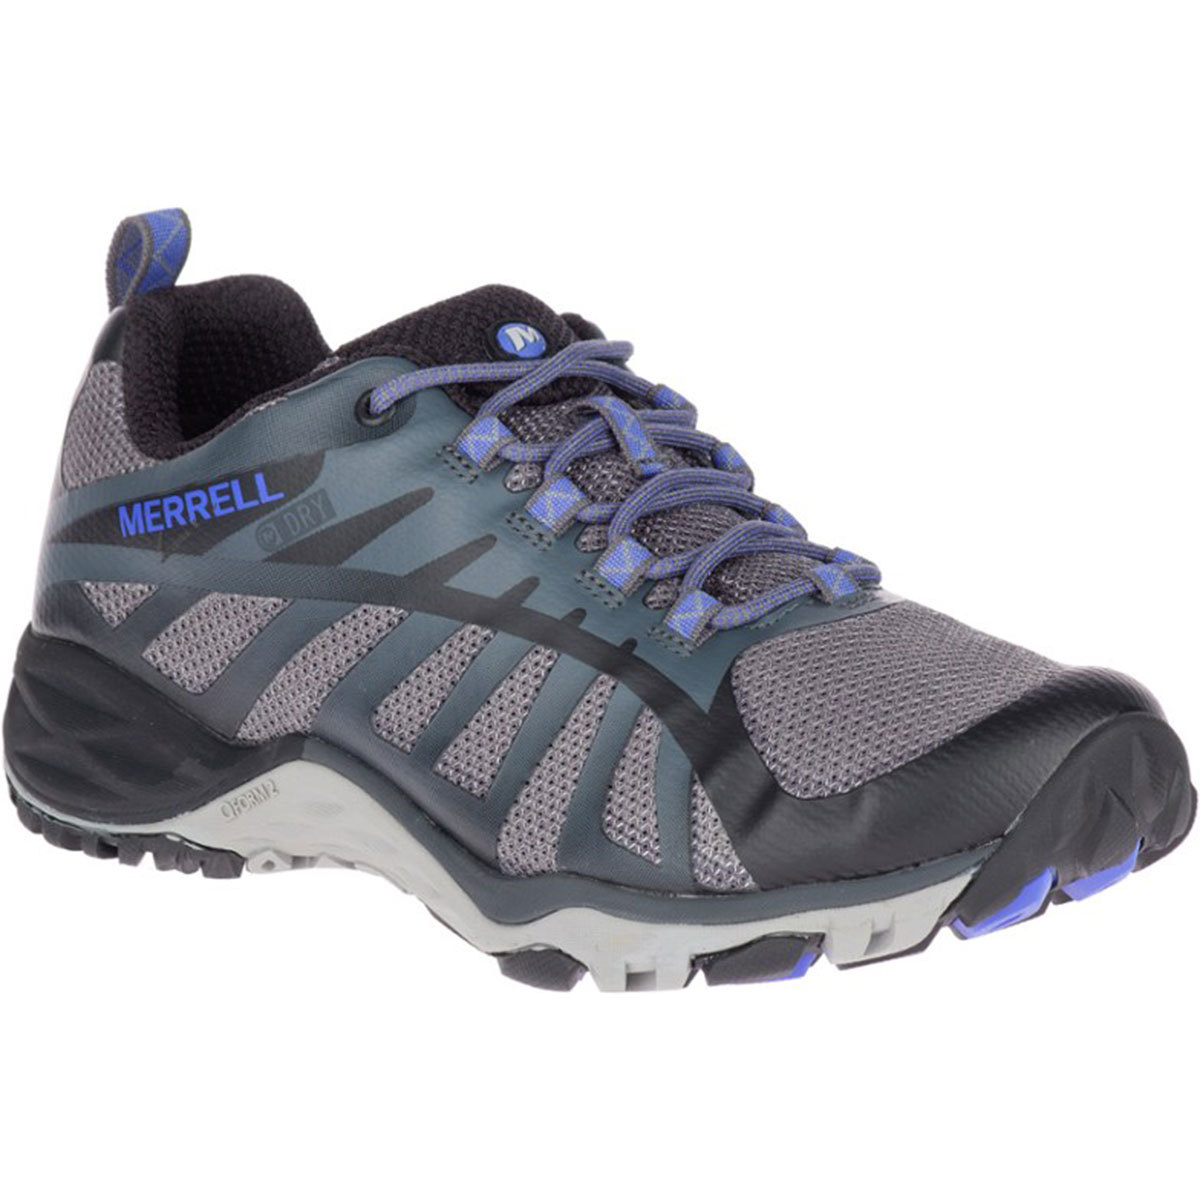 Merrell Women's Siren Edge Q2 Waterproof Low Hiking Shoes - Black, 11